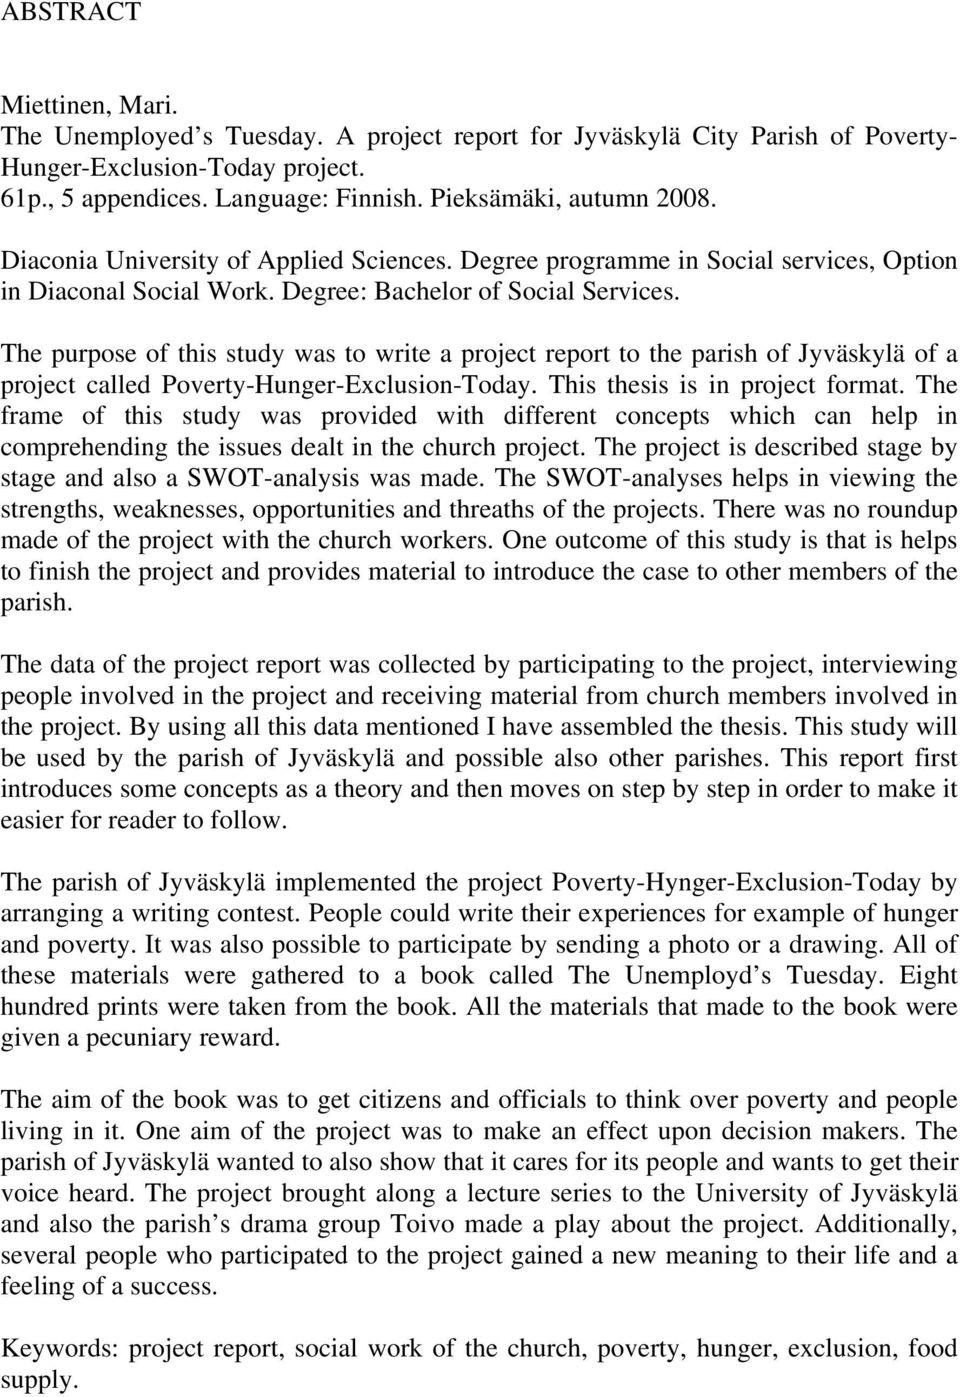 The purpose of this study was to write a project report to the parish of Jyväskylä of a project called Poverty-Hunger-Exclusion-Today. This thesis is in project format.